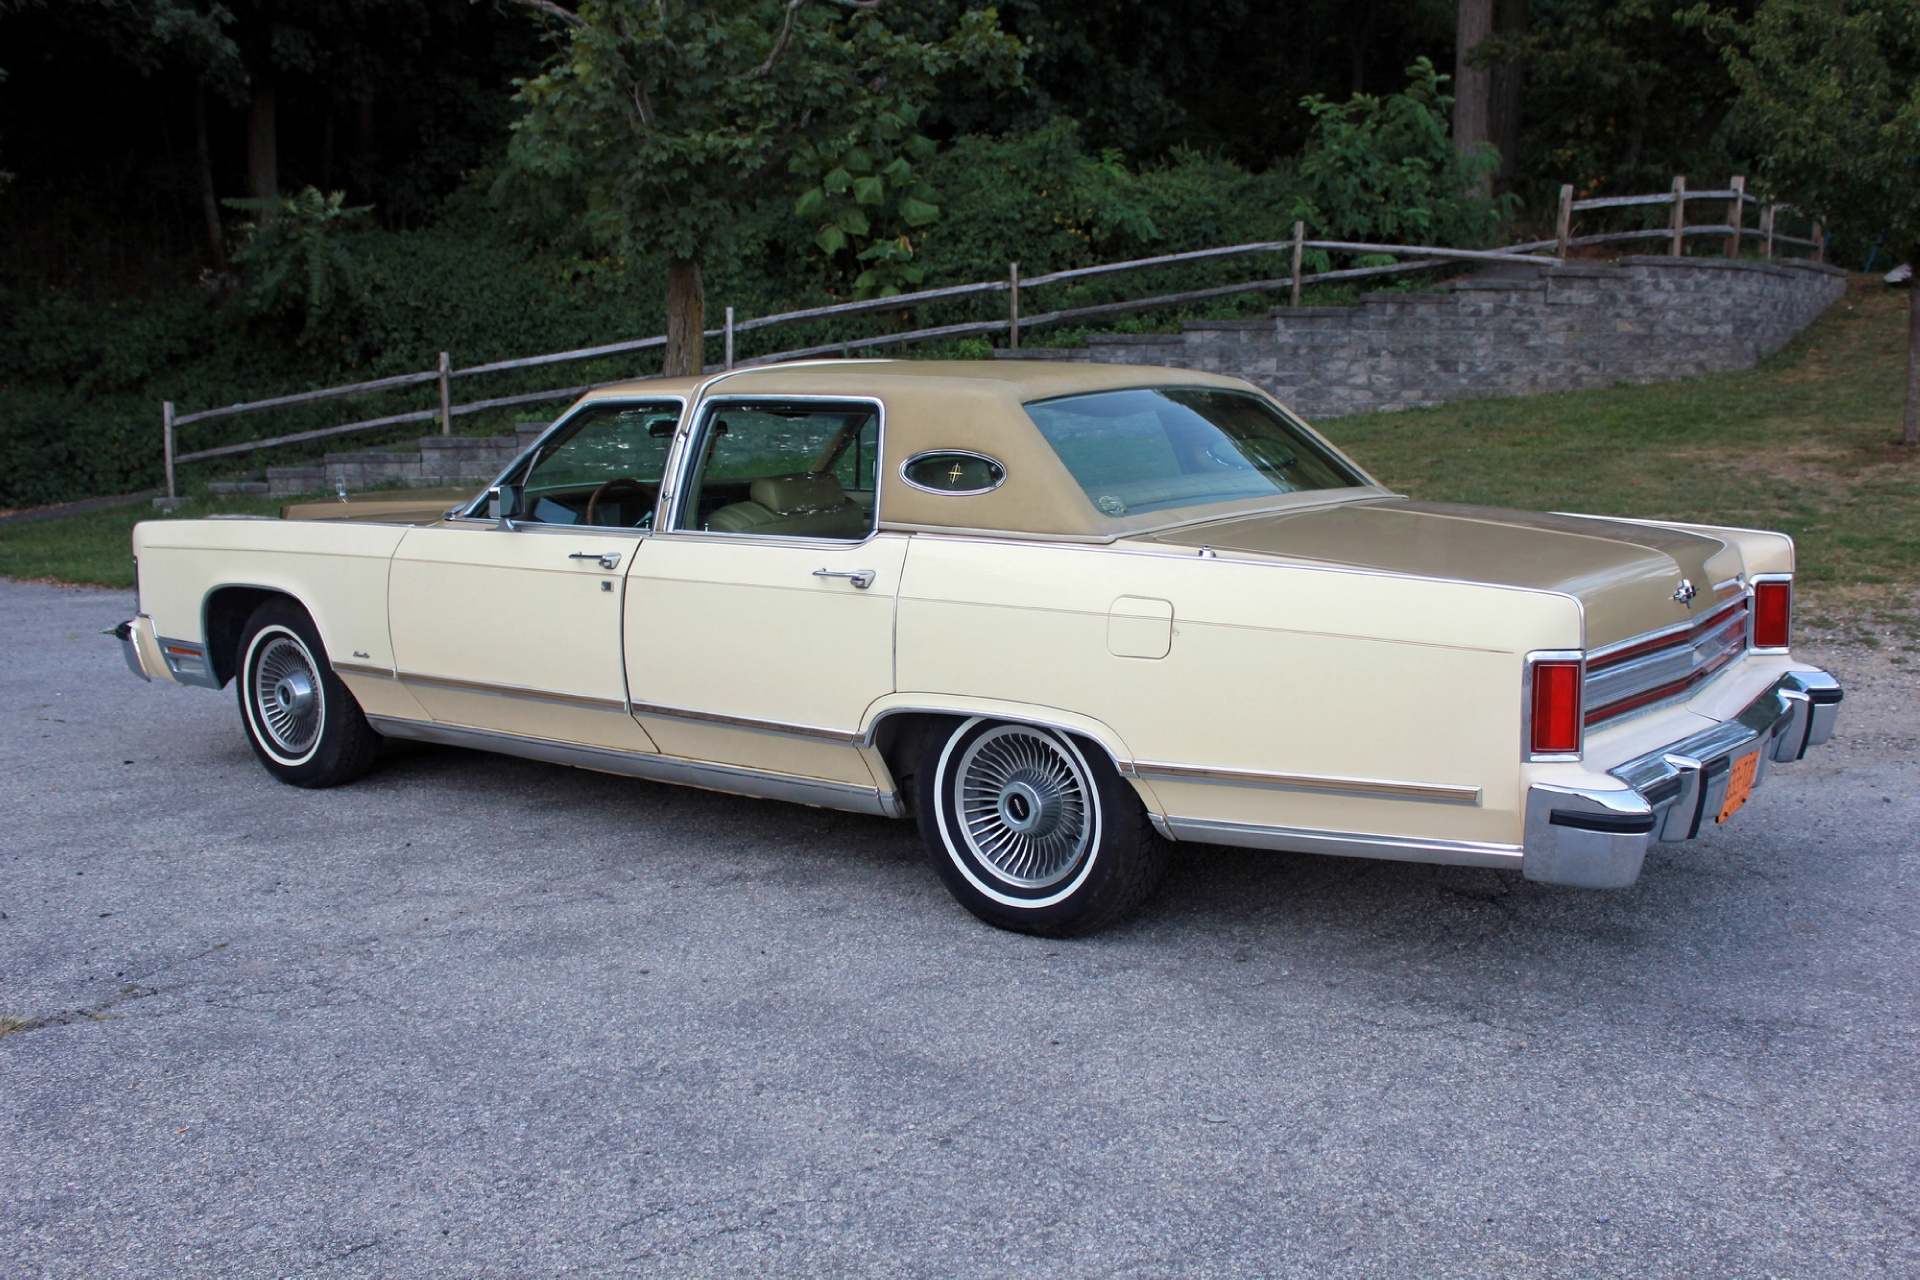 1979 Lincoln Continental Stock # 1979LINCOLNCONT for sale